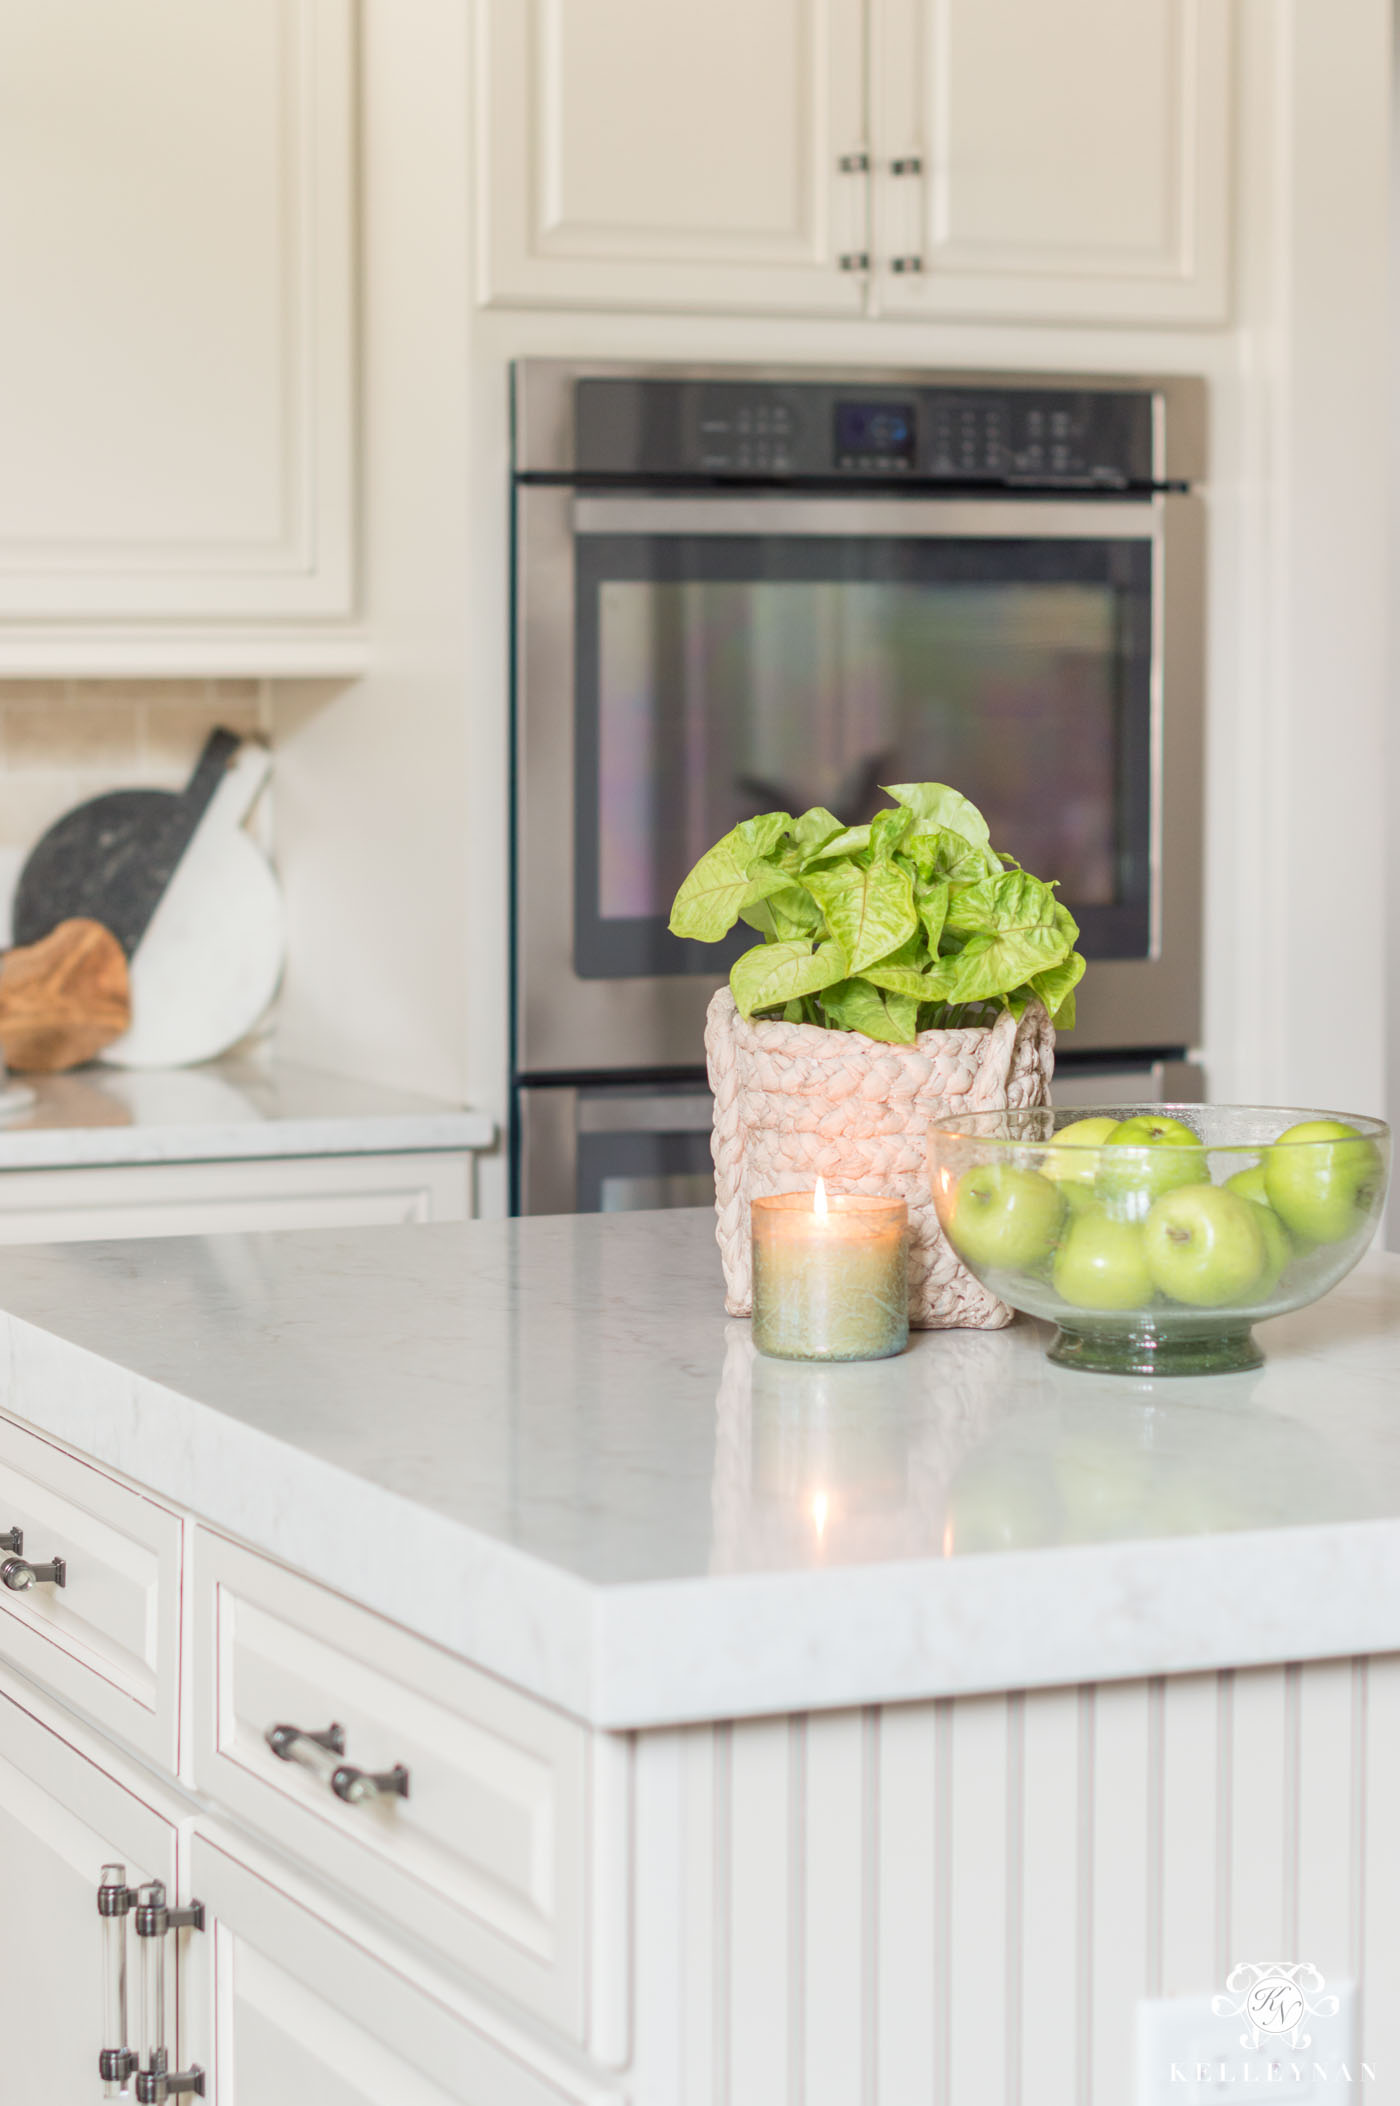 Kitchen Island Decor: 6 Easy Styling Tips | Kelley Nan